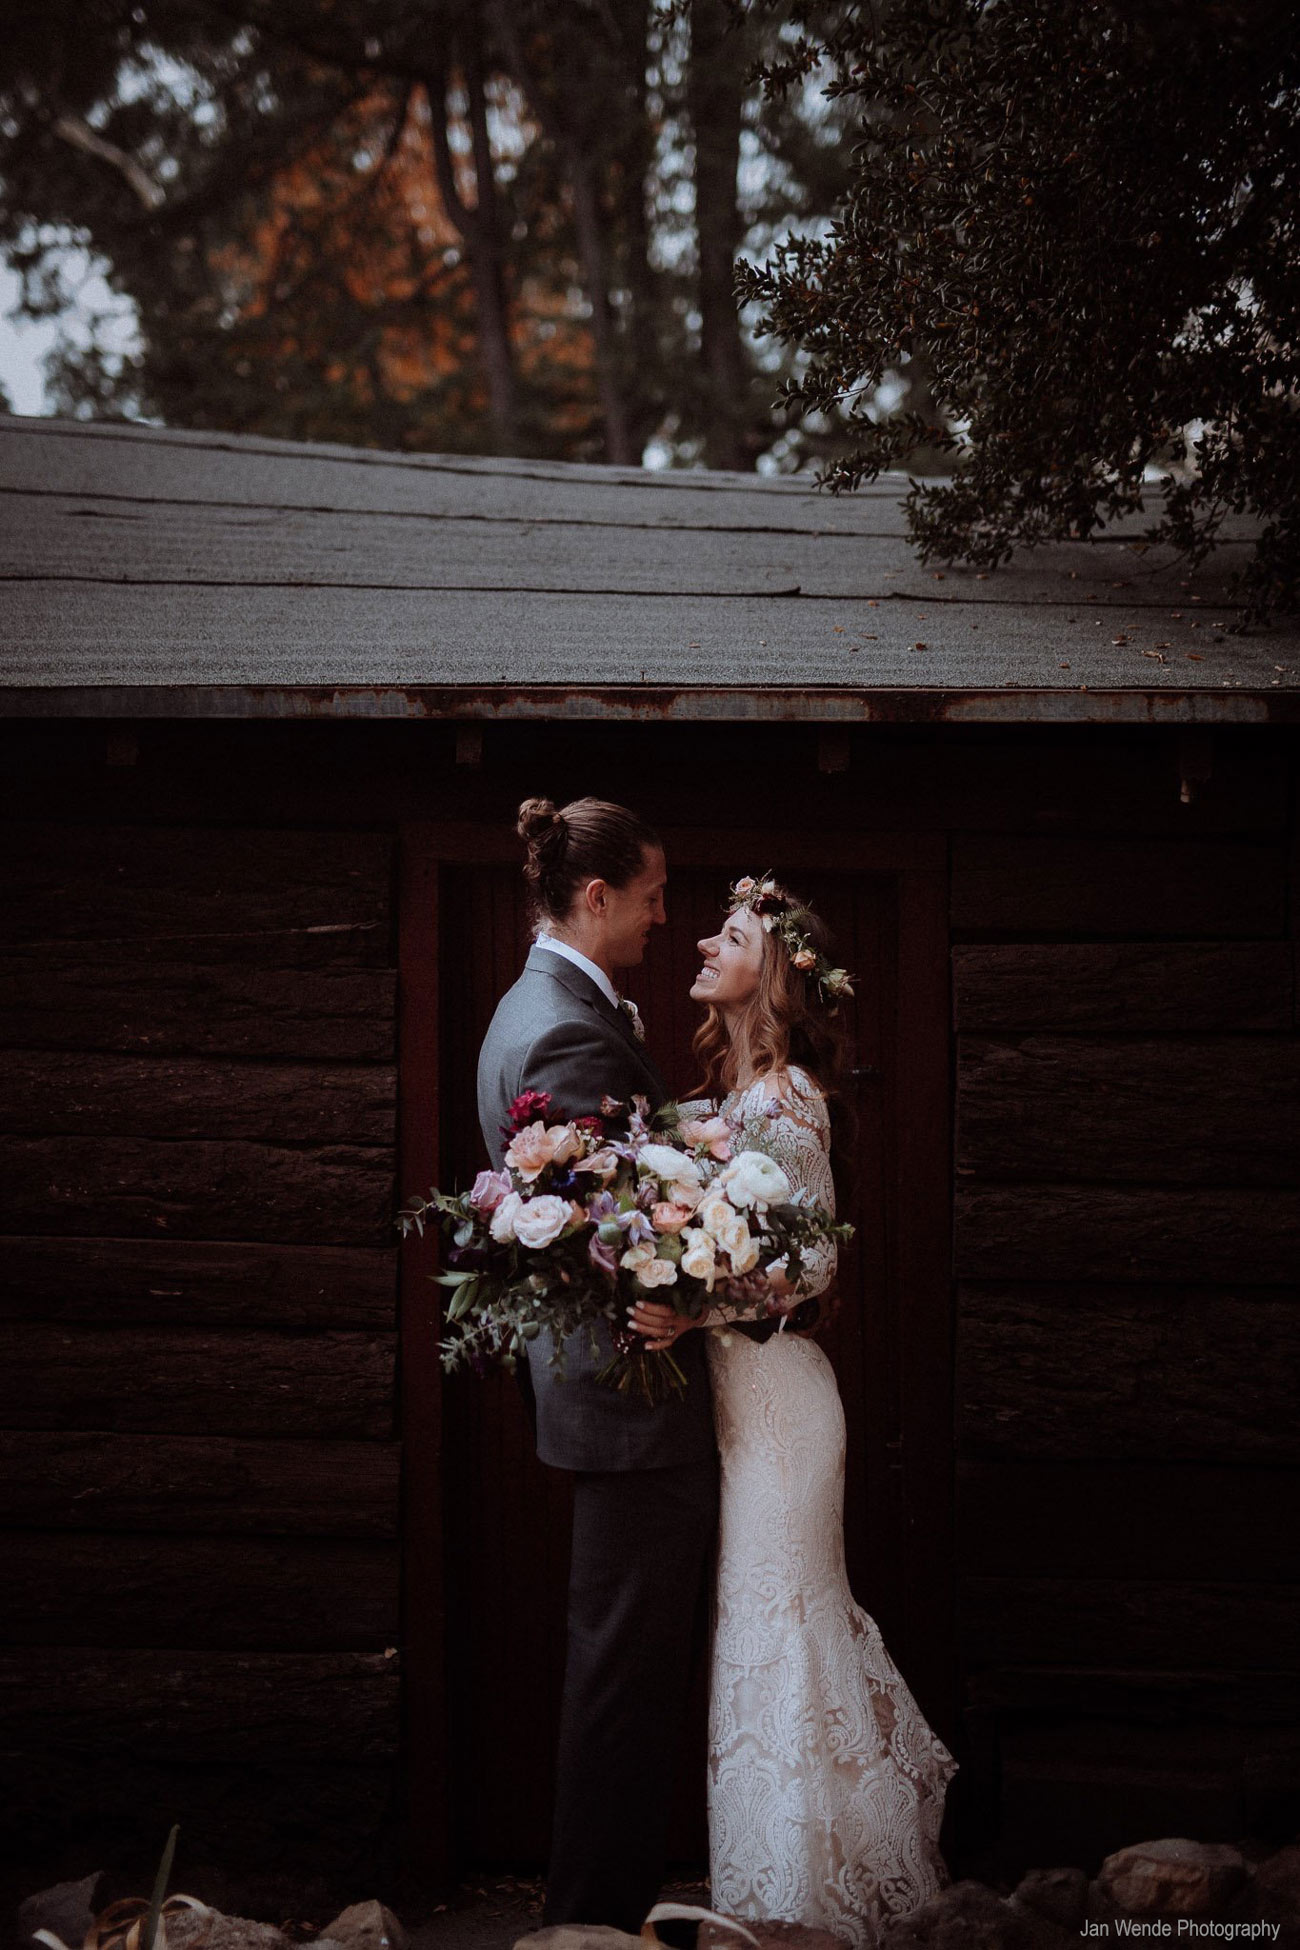 Couple-at-Cabin-Jan-Wende-Photography.jpg